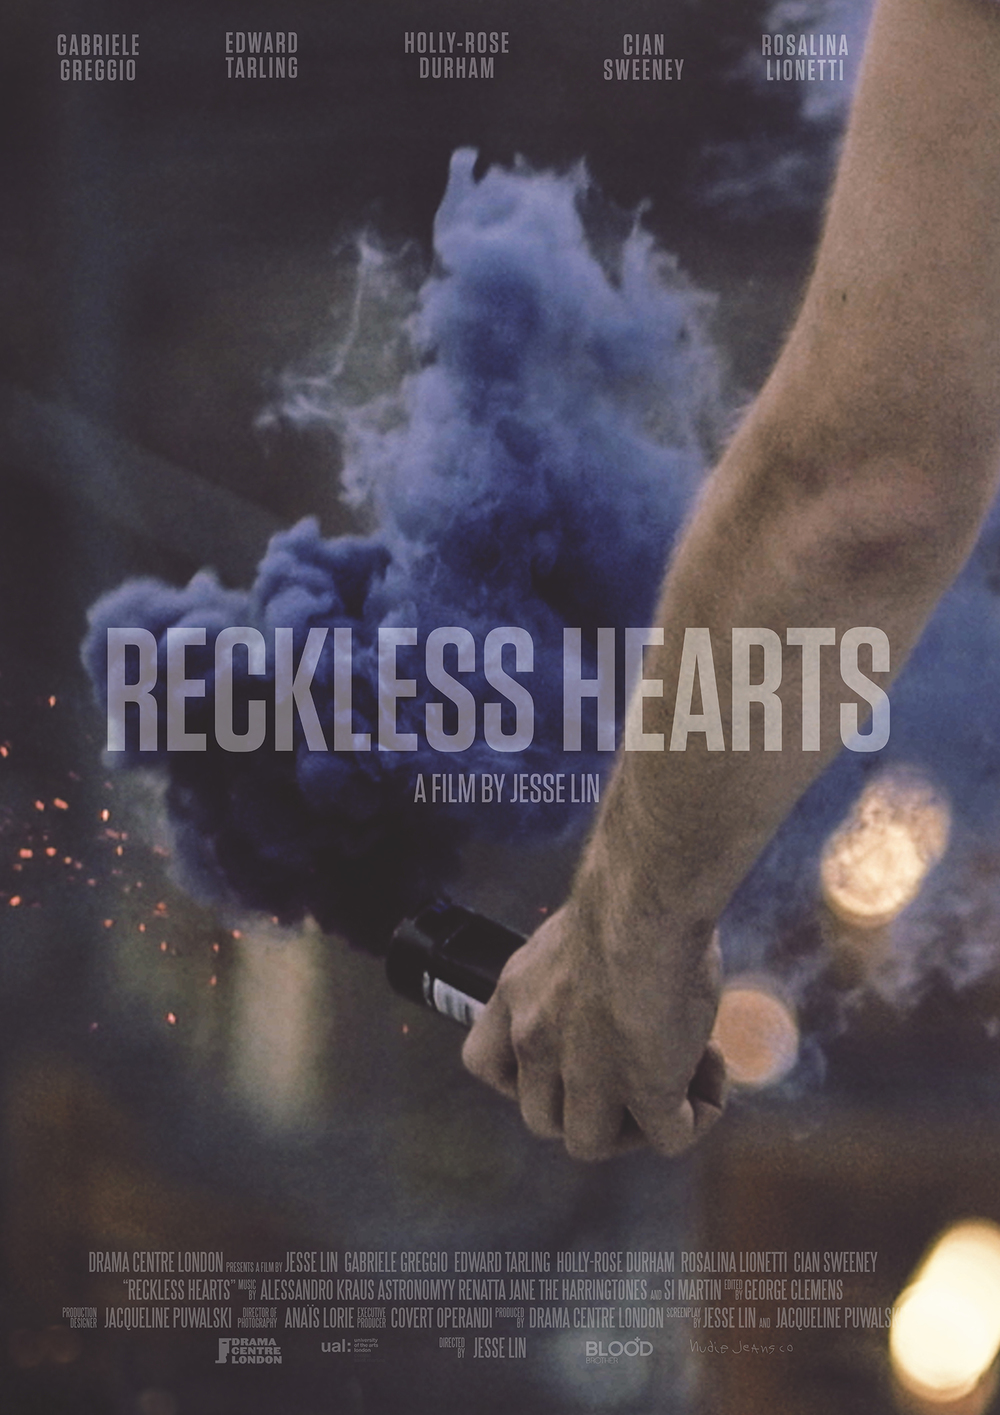 Reckless Hearts Movie Poster - Jesse Lin 1500.jpg